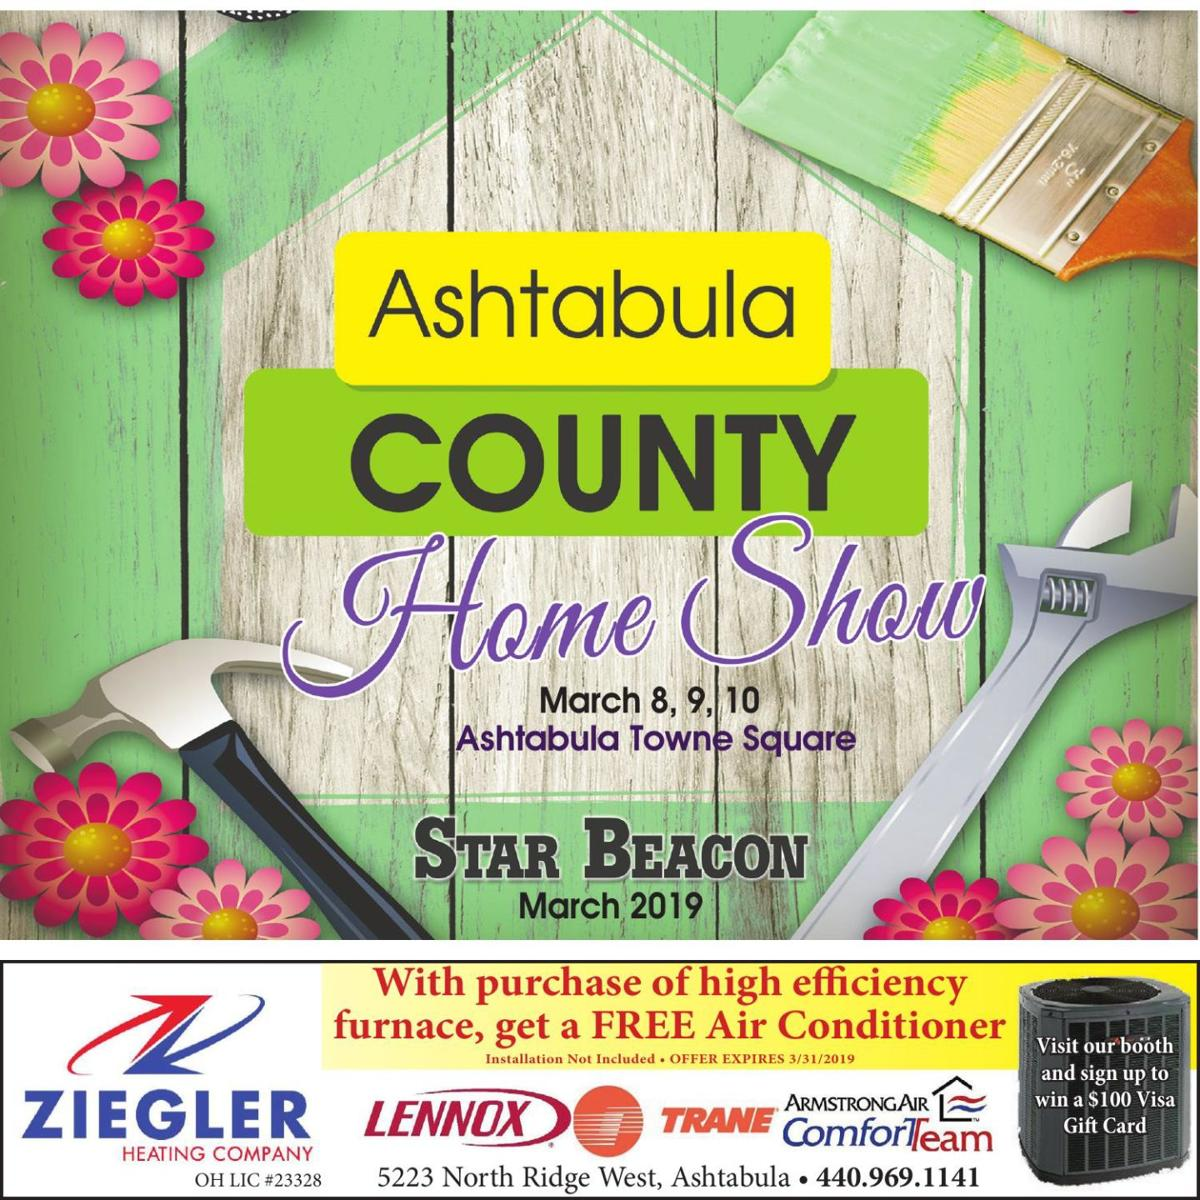 2019 Ashtabula County Home Show